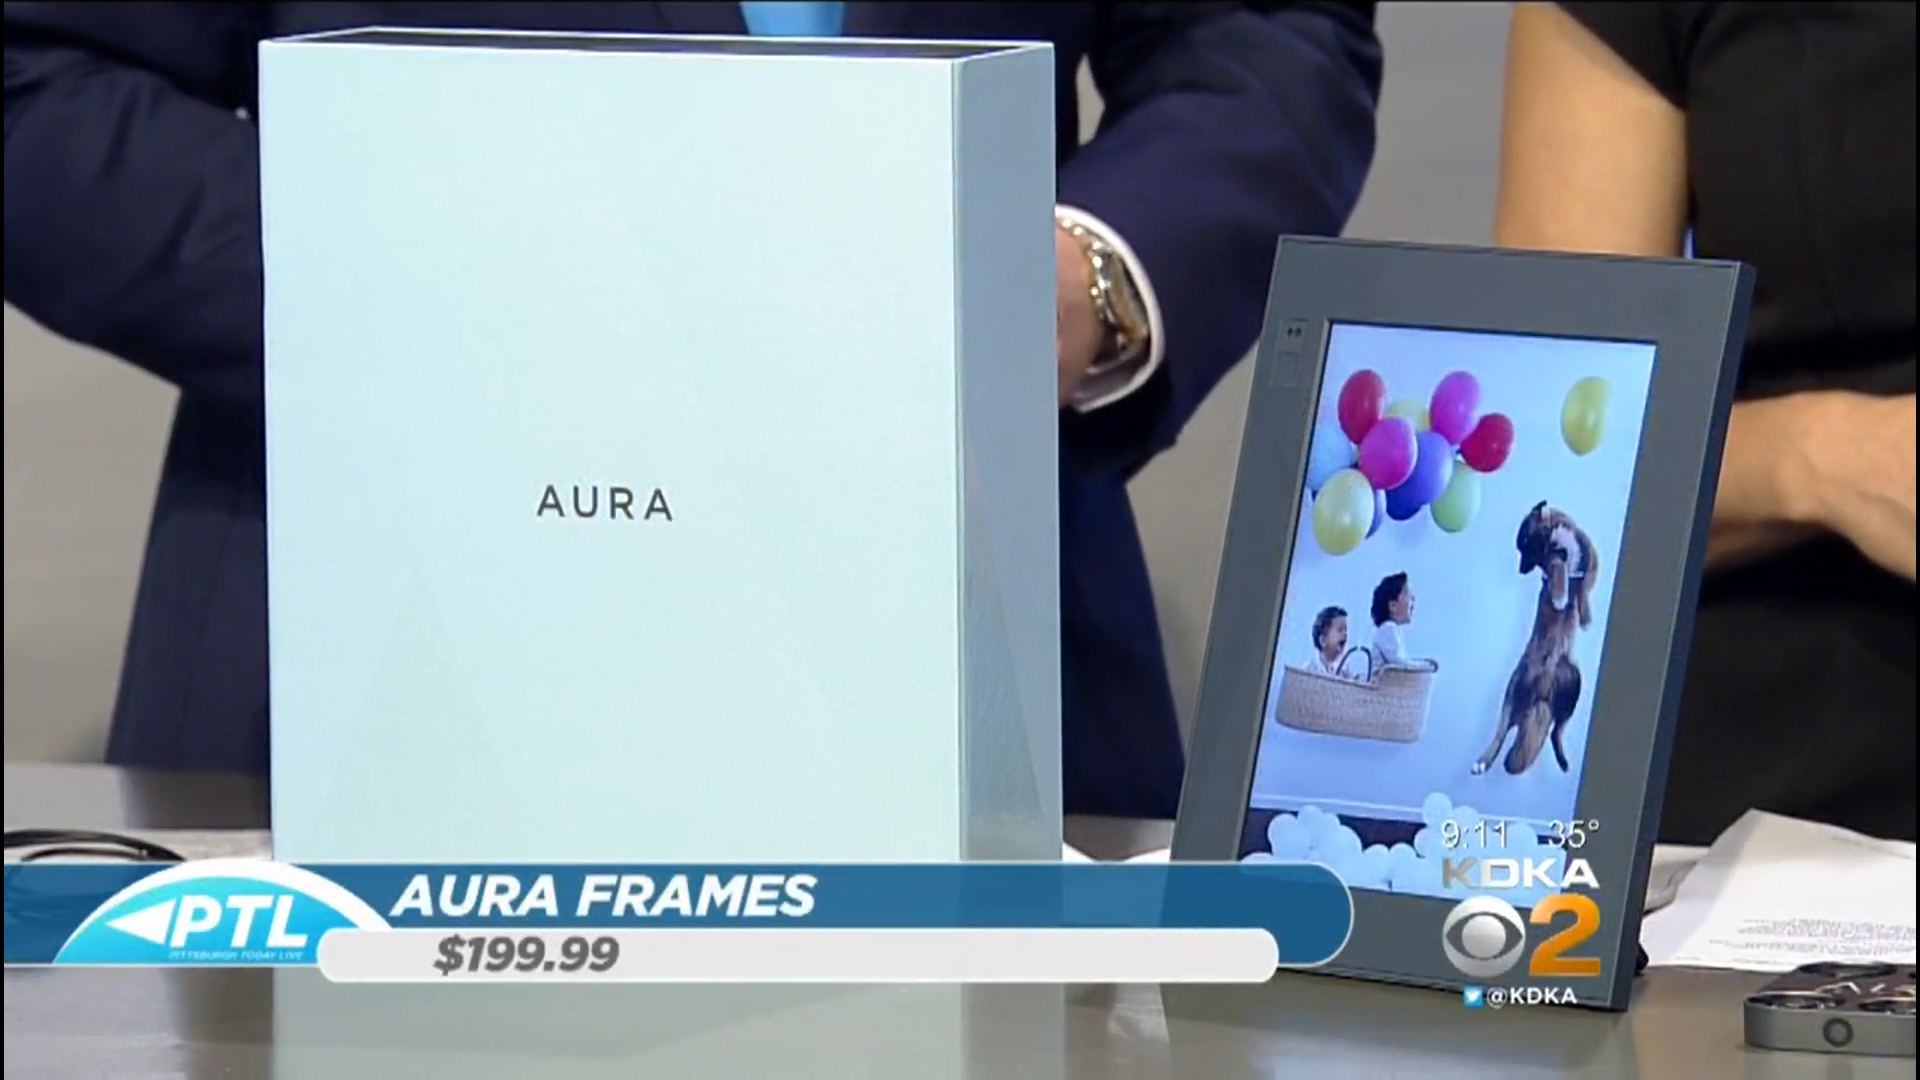 AURA FRAMES - $199.99Shop Now